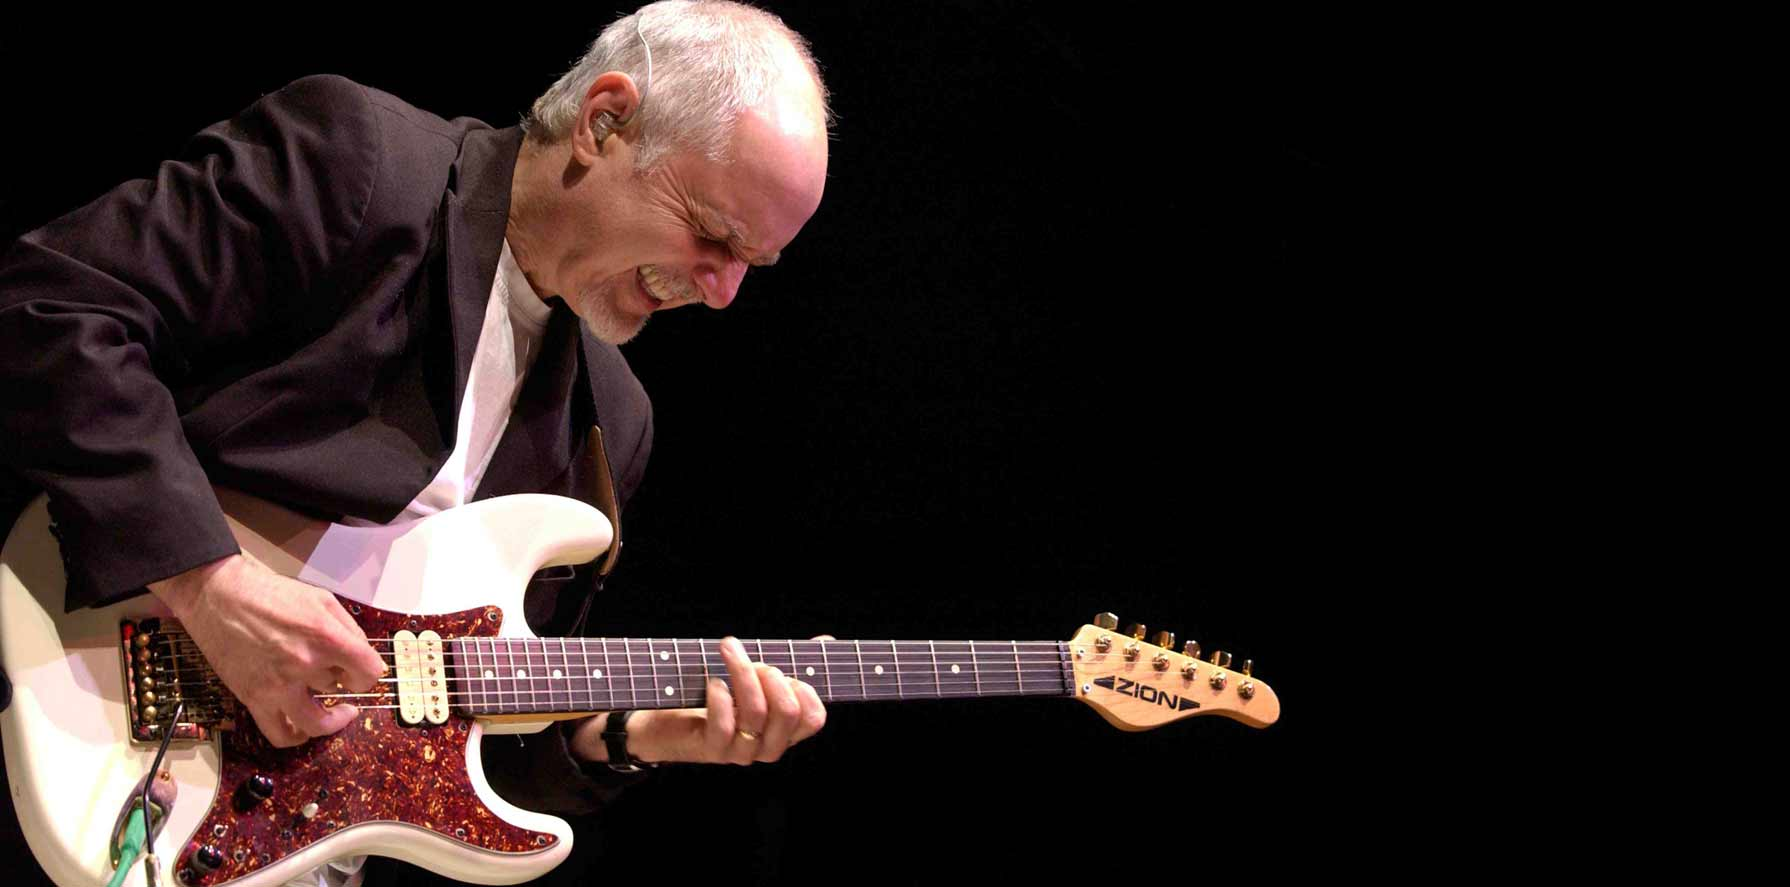 Guitar Giveaway from Phil Keaggy